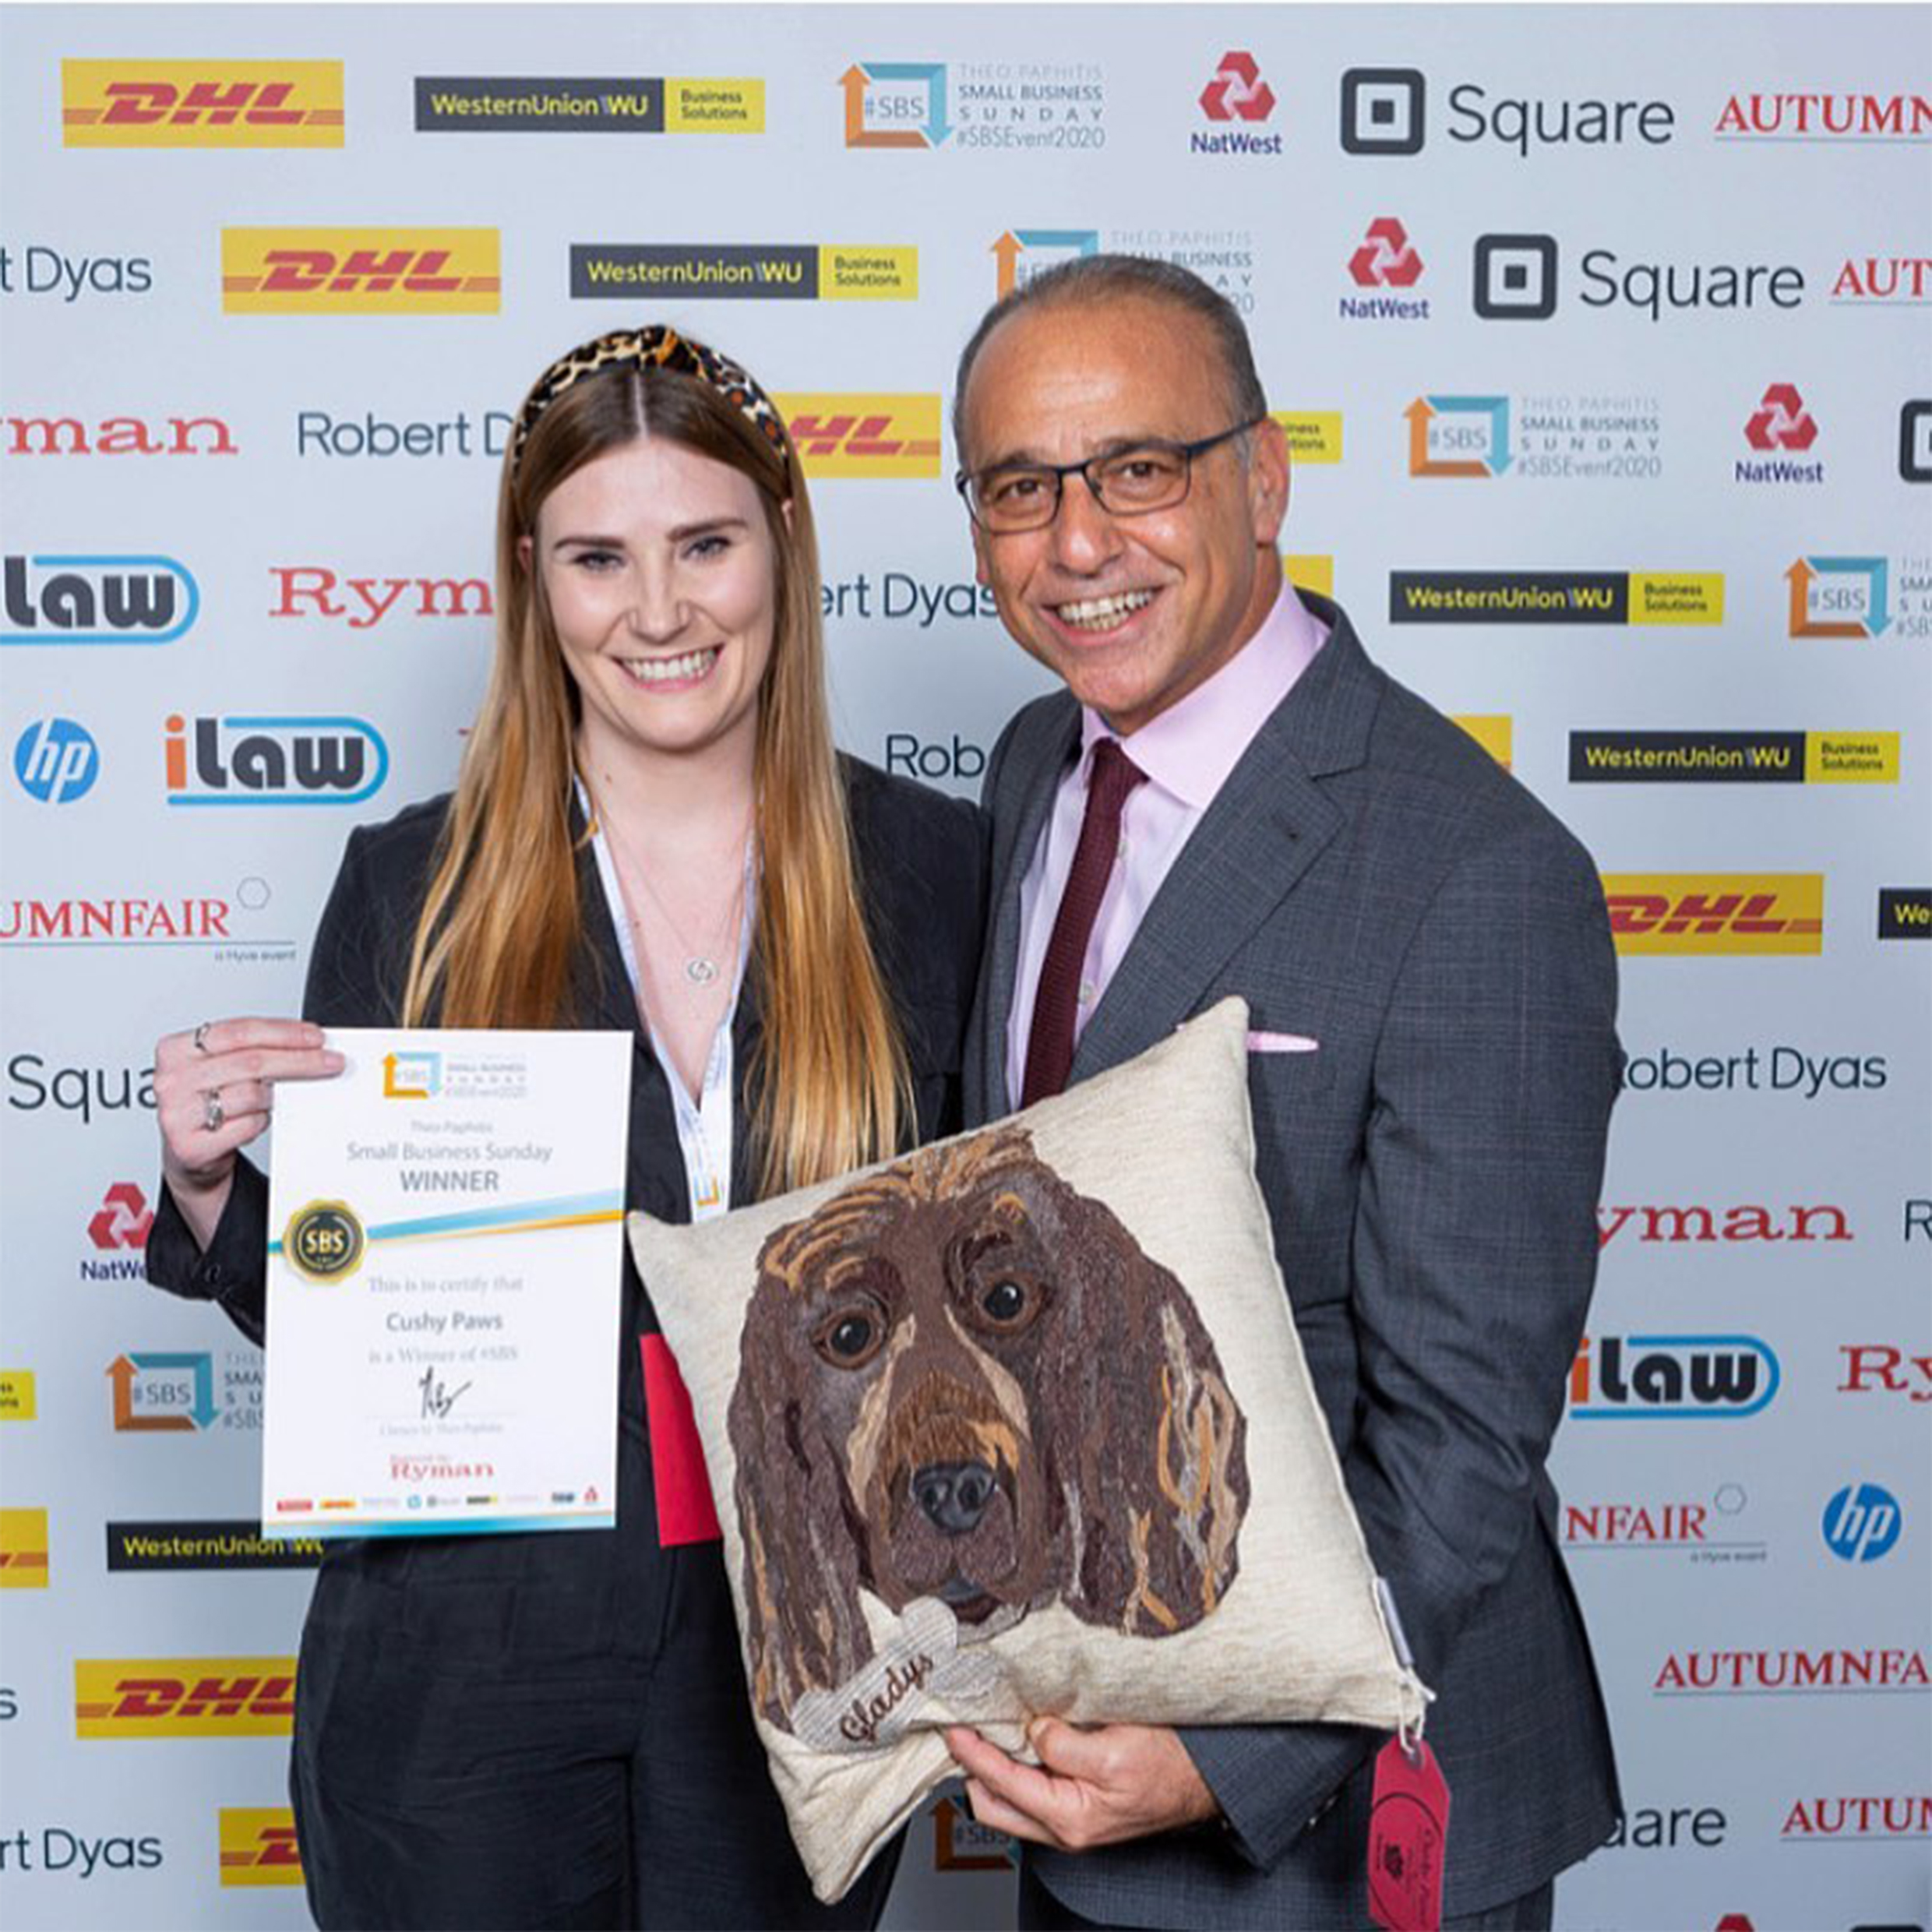 Theo Paphitis with Cushy Paws pet Portrait Cushion